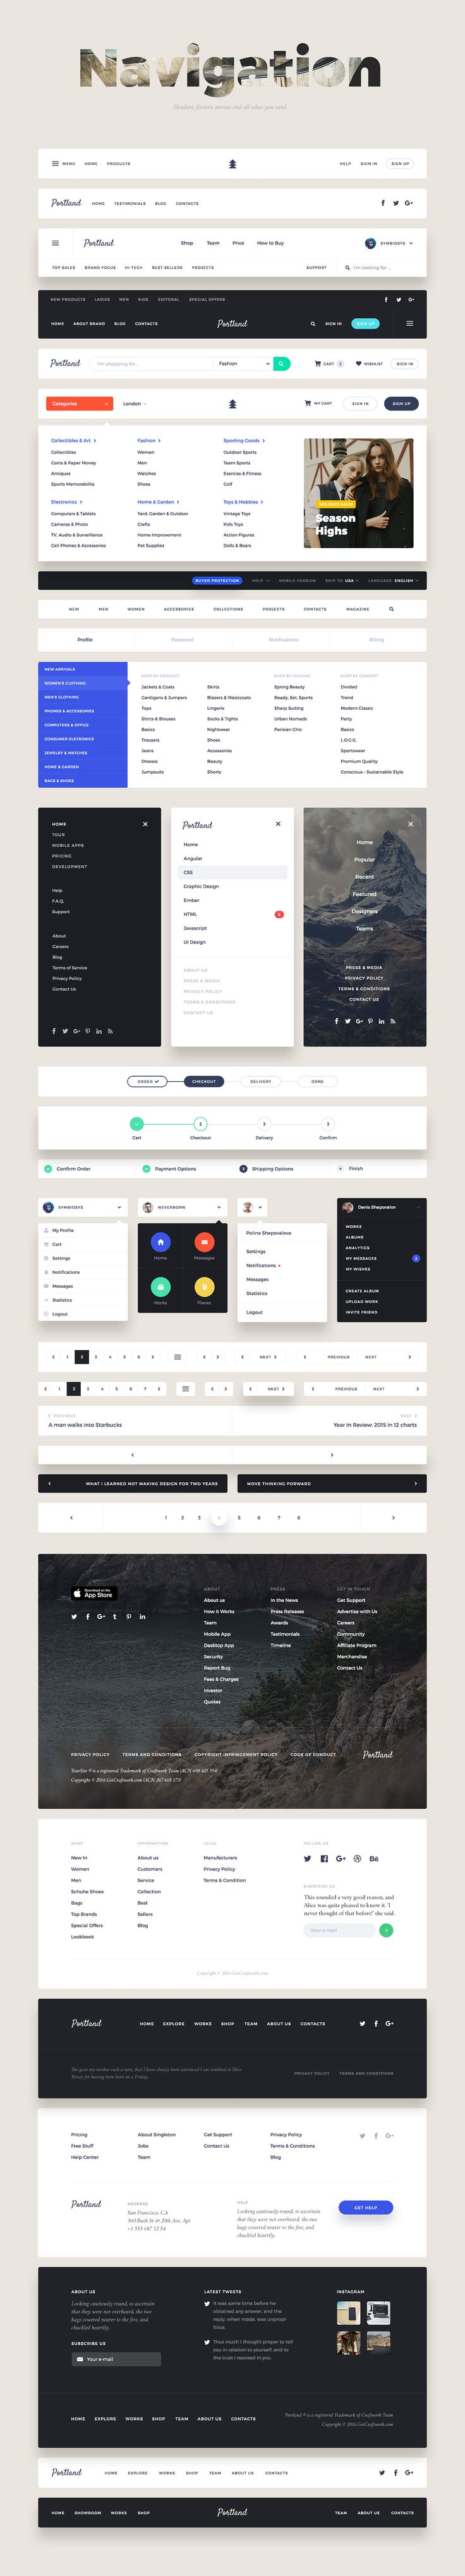 Portland UI Kit on Behance